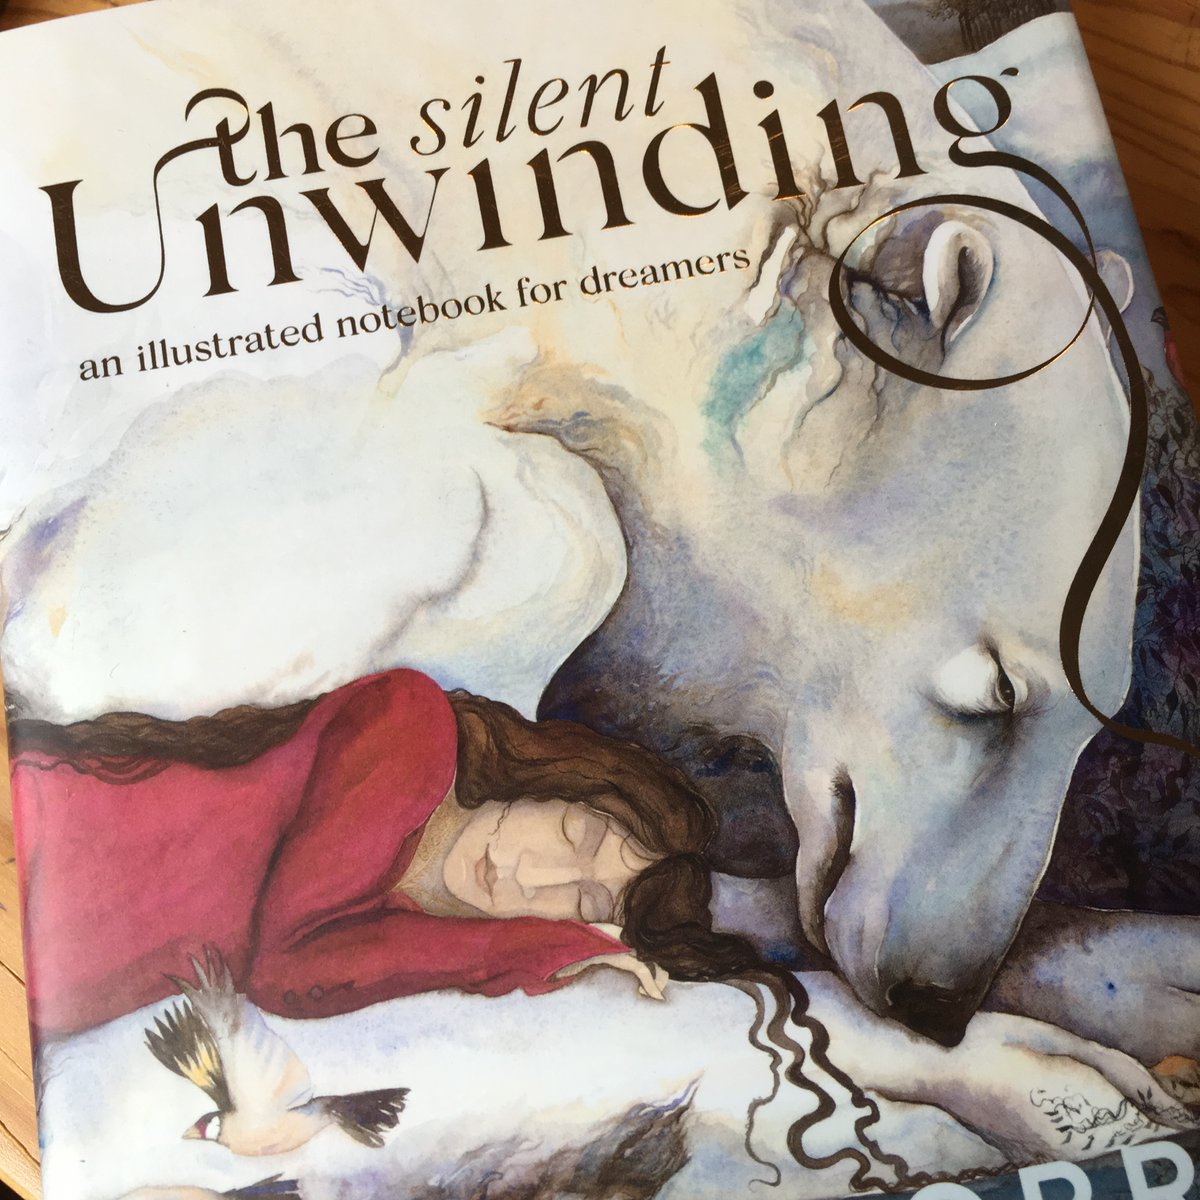 If you require peace of mind, a lullaby to lead you into the arms of Morpheus, don't forget the audio book of The Unwinding, available for download from @unbounders  Just scroll a little to find. Beautifully spoken by @TheBookshopBand Perfect companion to The Silent Unwinding https://t.co/99D6F2jOP9